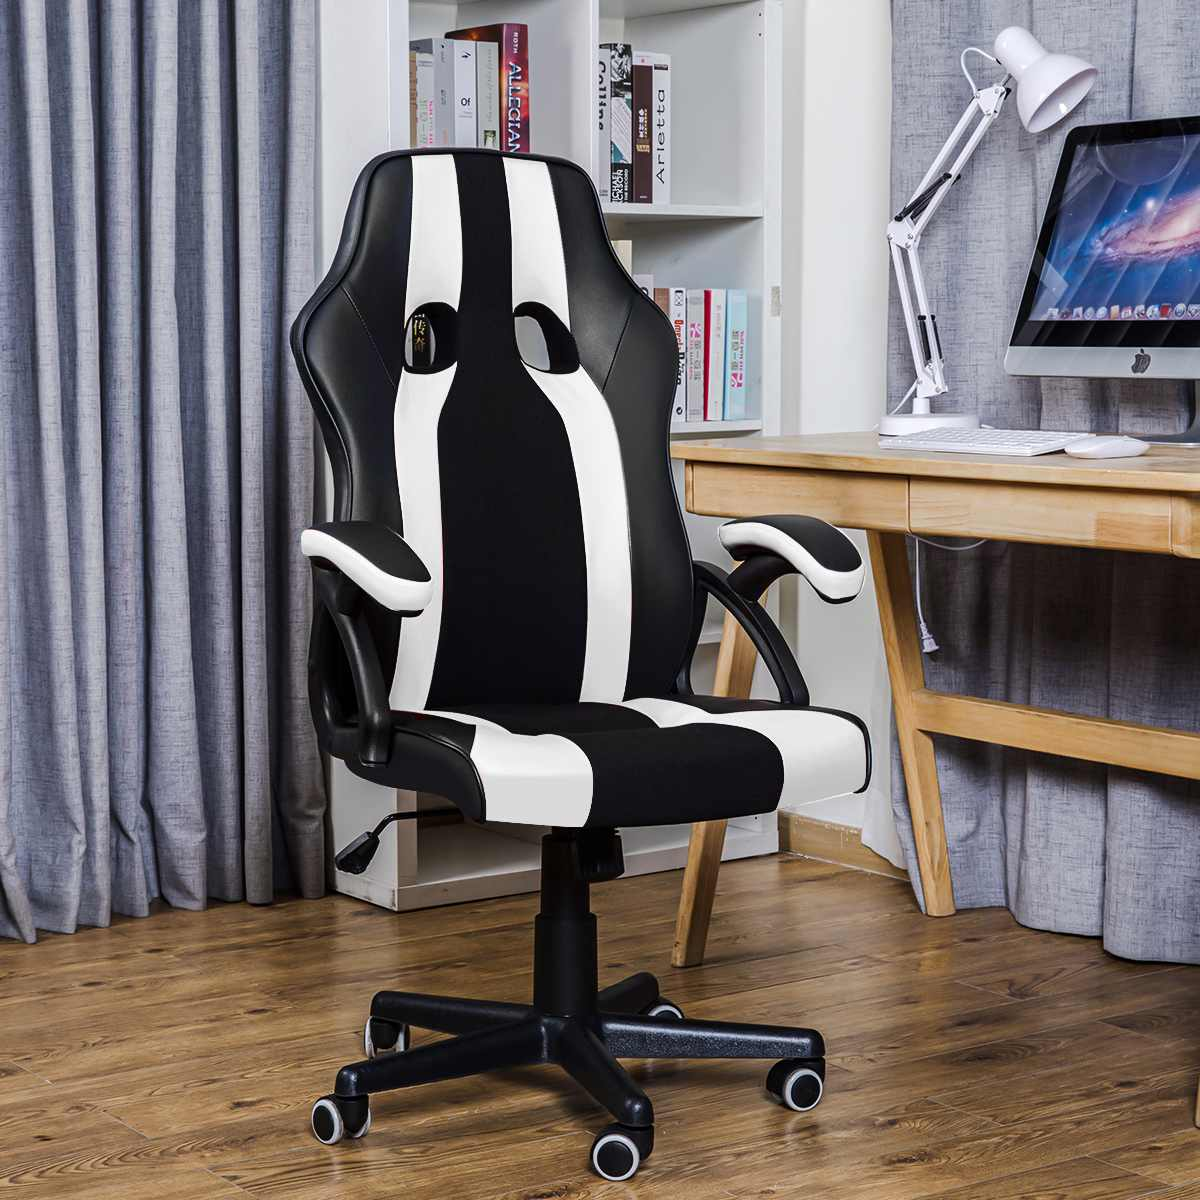 Hca236819150d4b69b86ccb5d70d66124p - Gaming Office Chairs Executive Computer Chair Desk Chair Comfortable Seating Adjustable Swivel Racing Armchair Office Furniture